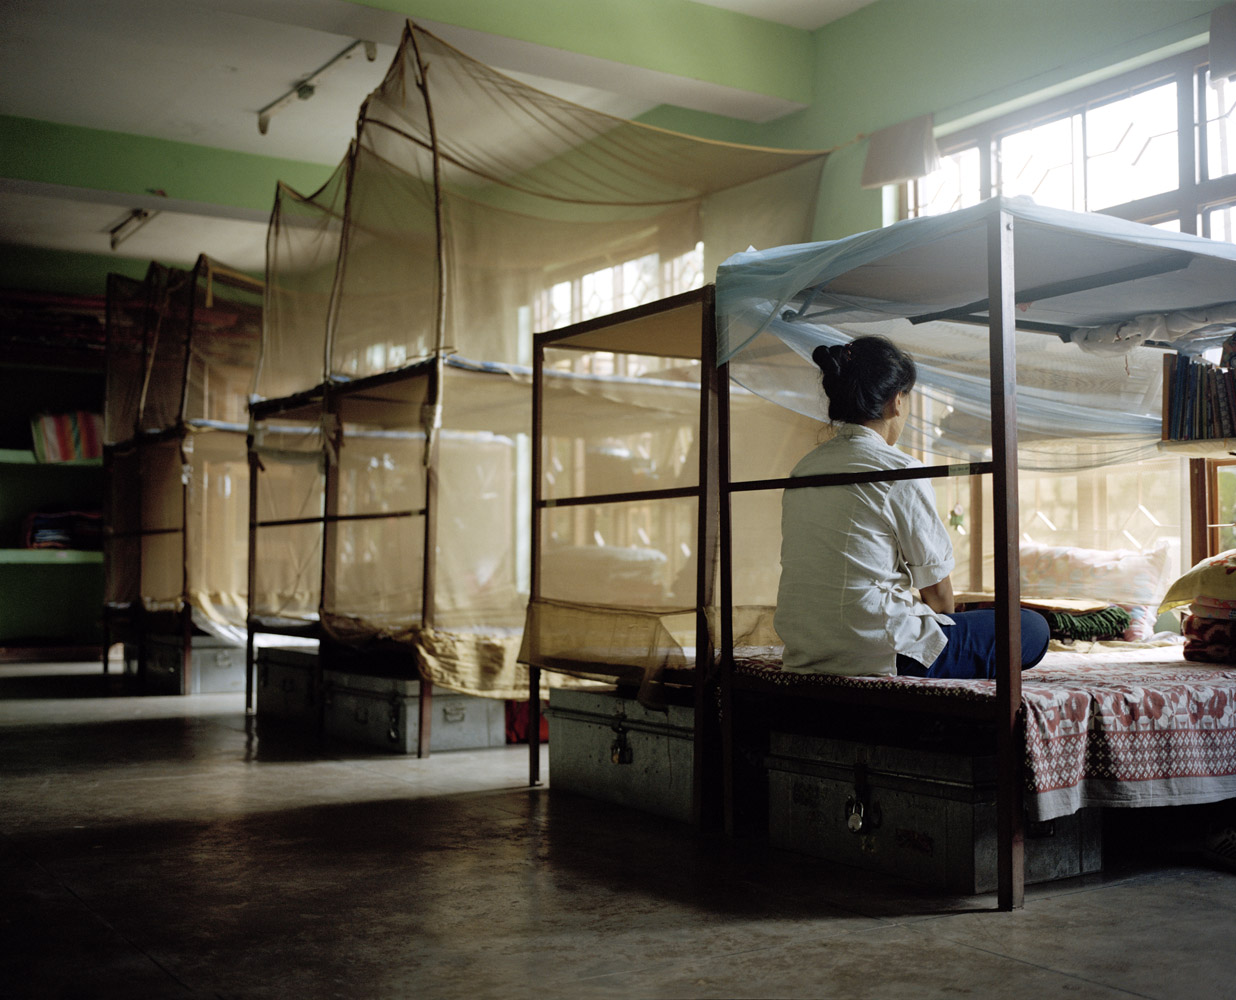 A woman sits on her bed inside the women's dormitory at the Tibetan Transit School.